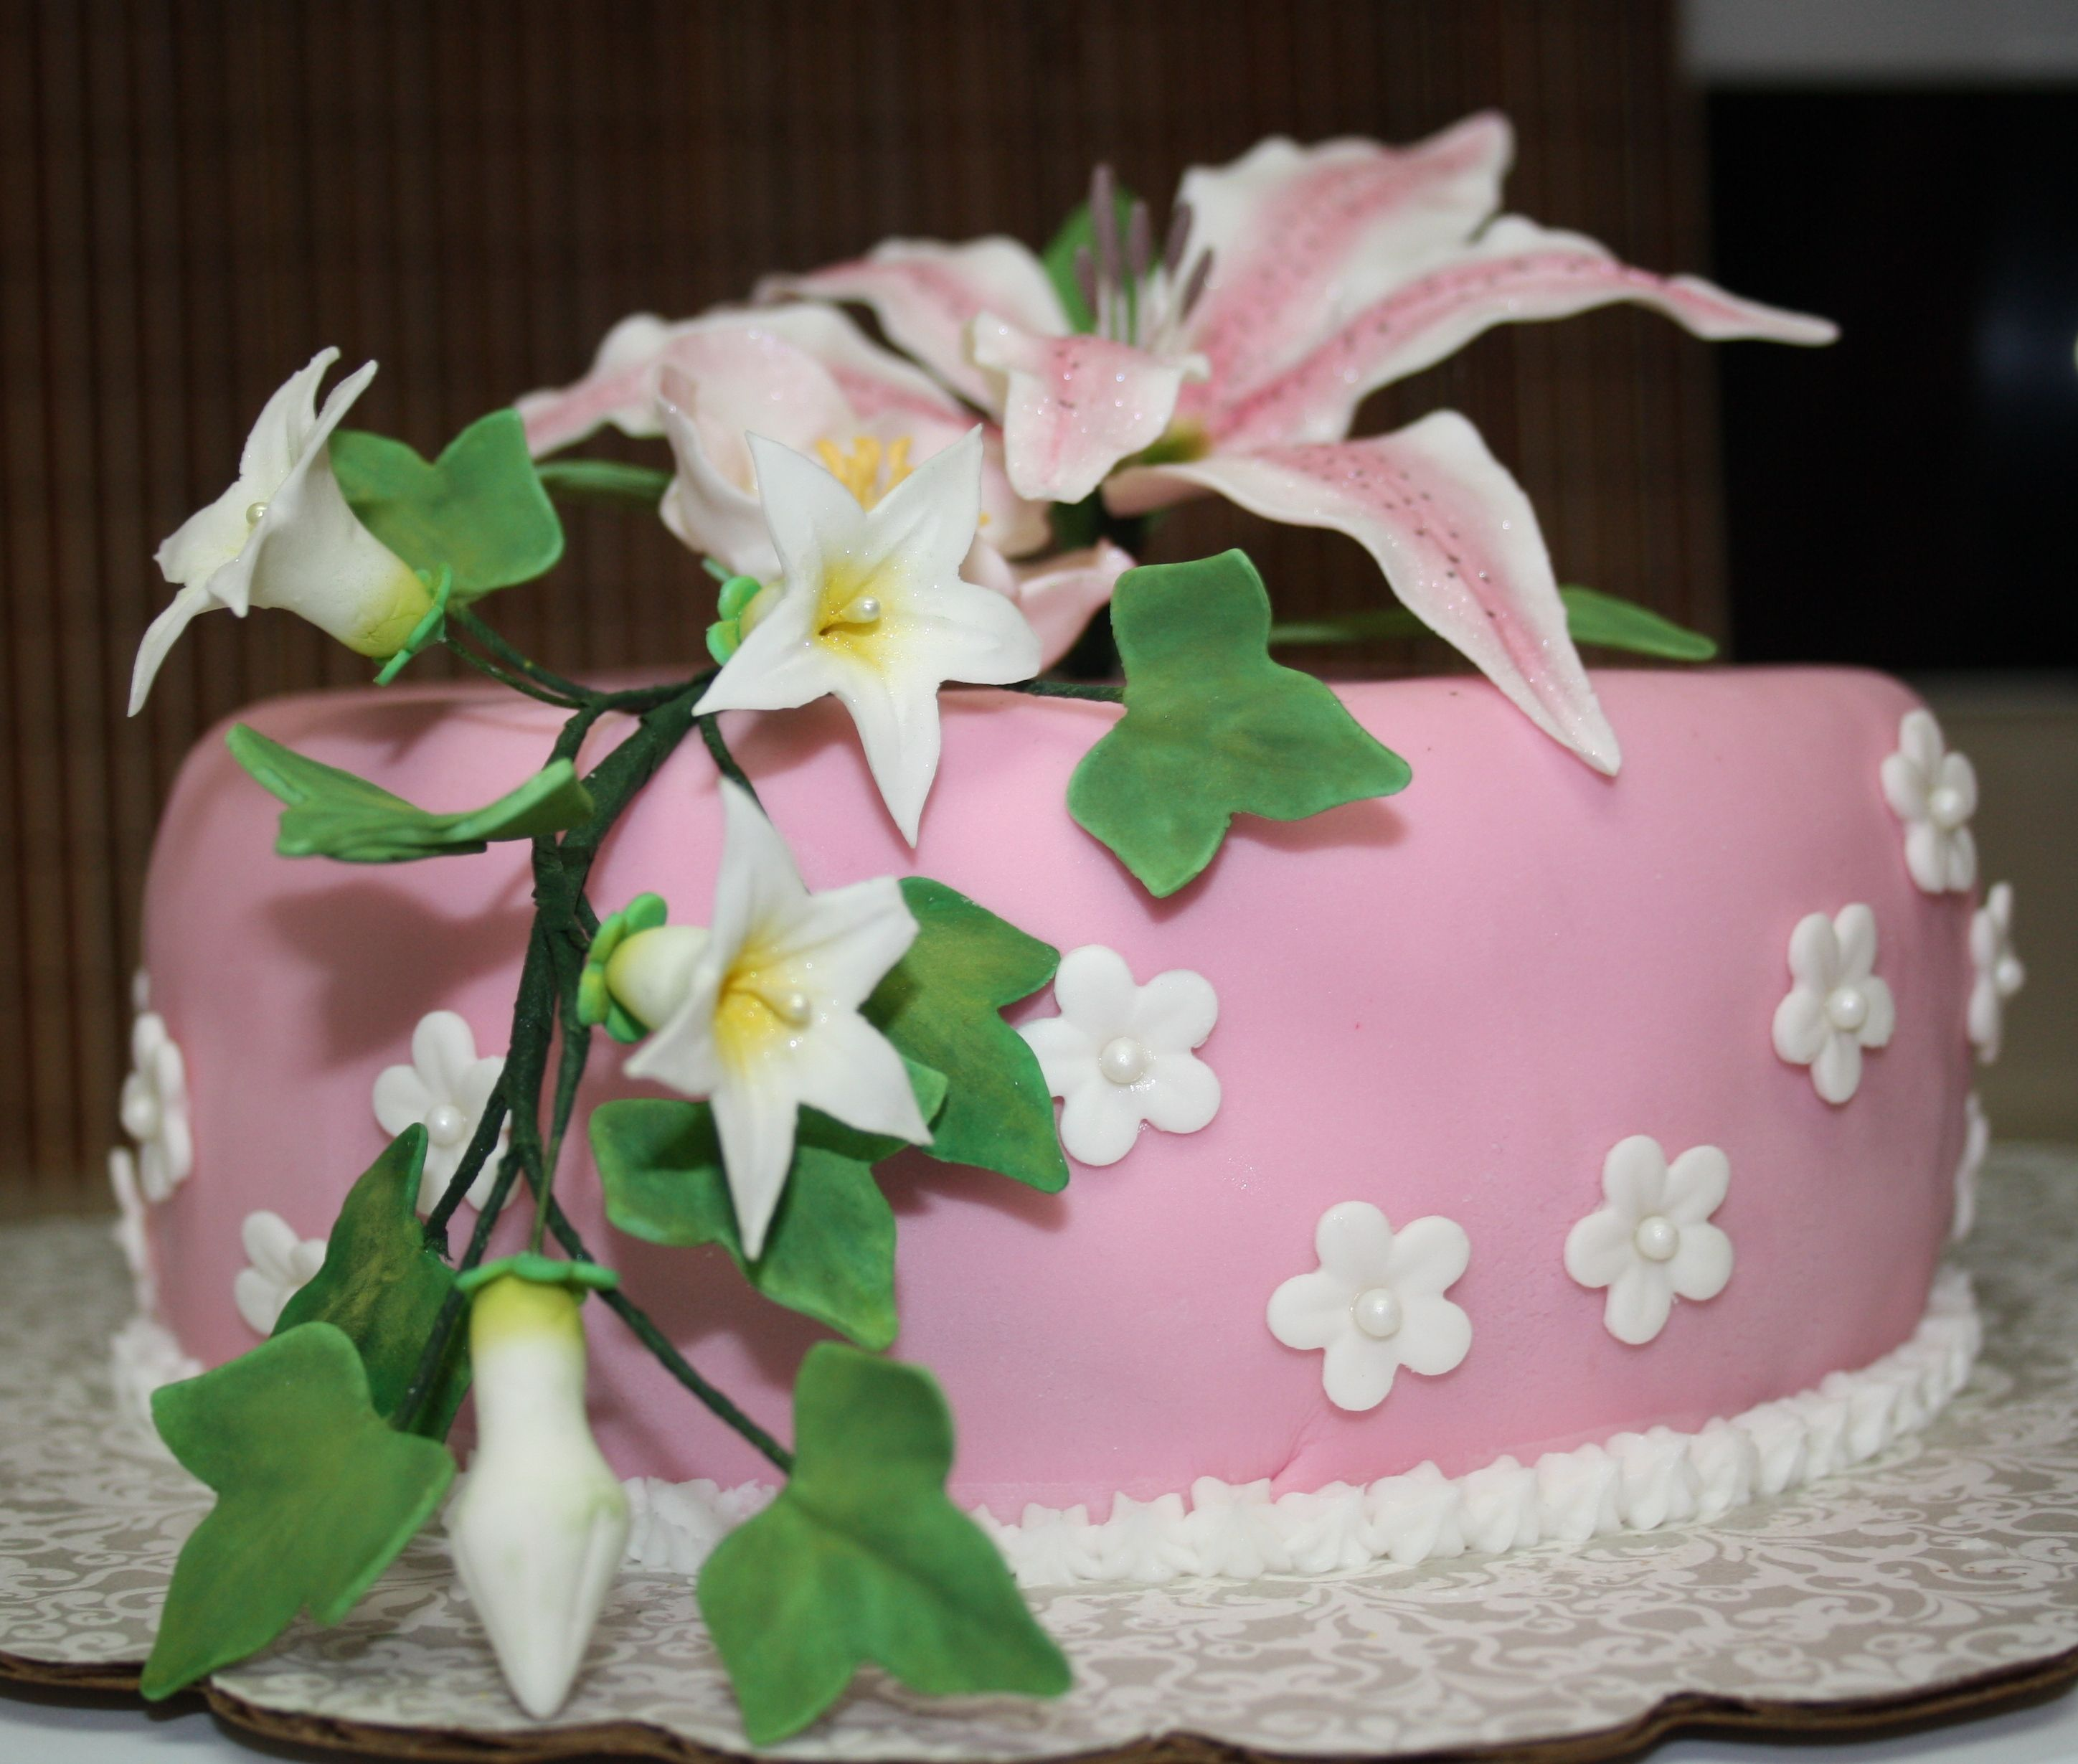 Michaels Cake Decorating Class Sign Up Awesome Wiltoncontest Cake For Final Class Wilton Method Course 4 Inspiration